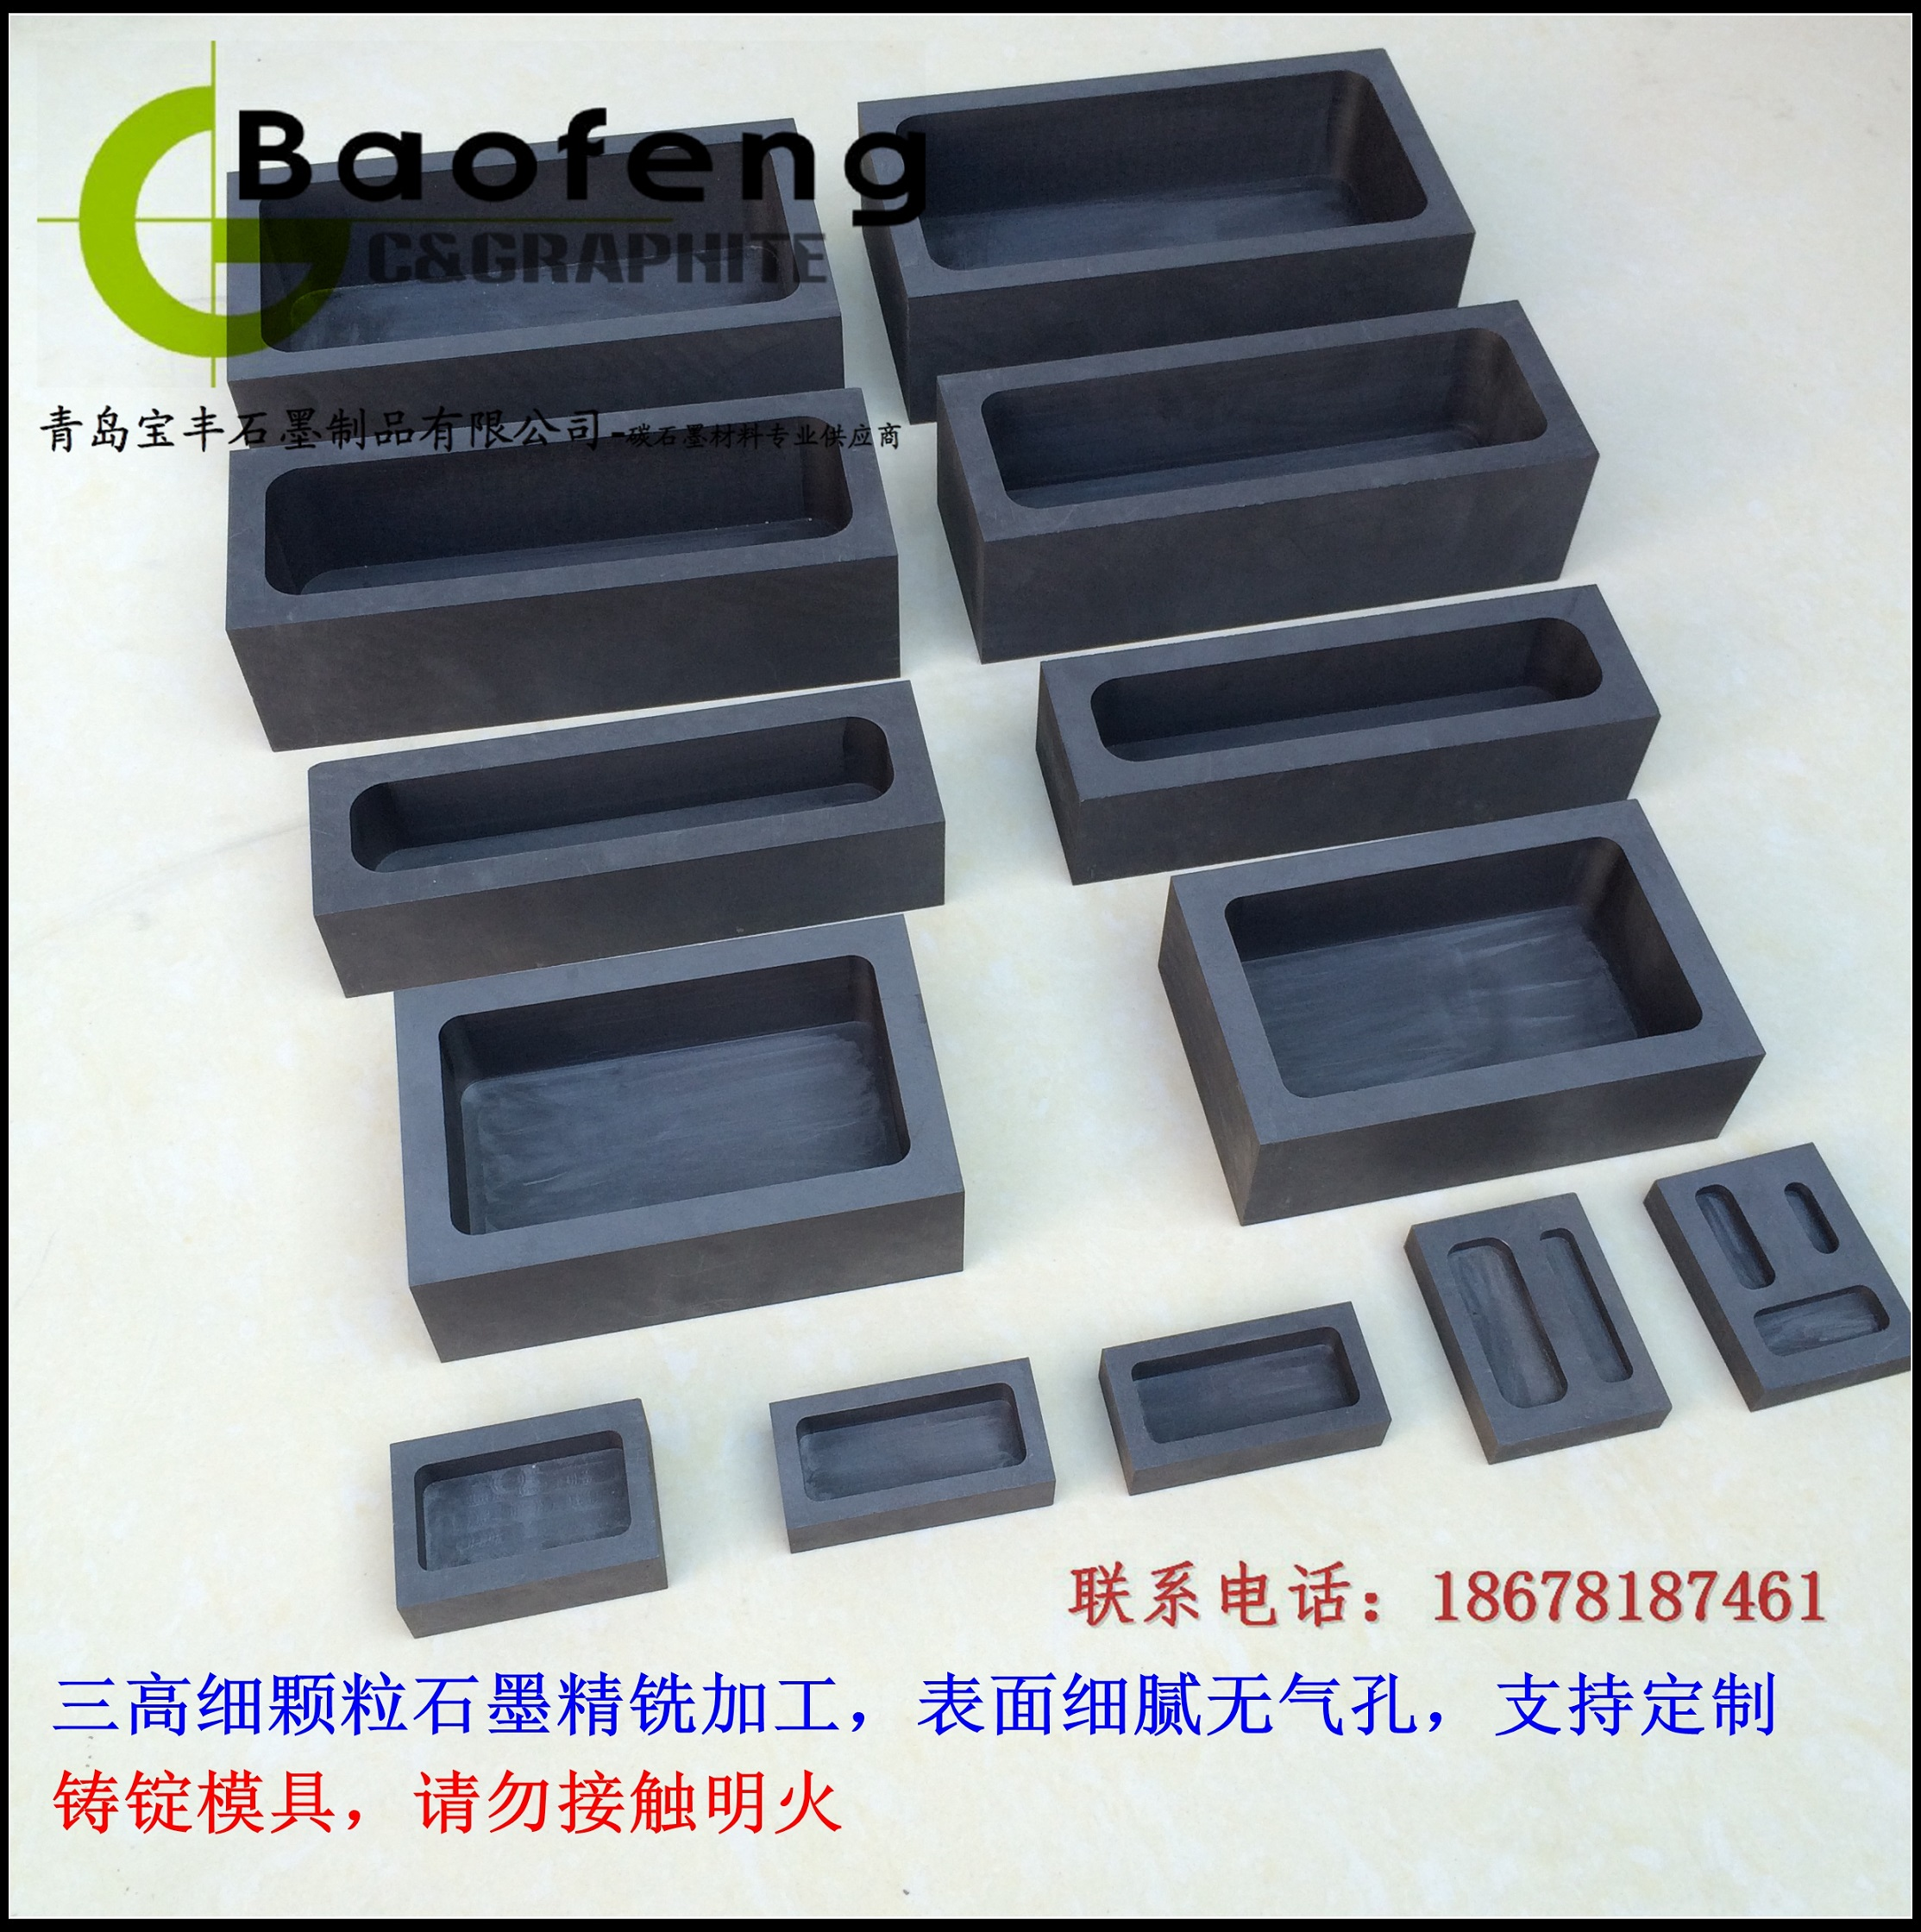 Pure graphite sump square Crucible smelting gold and silver bars pure  graphite mold analysis Crucible graphite tank factory direct